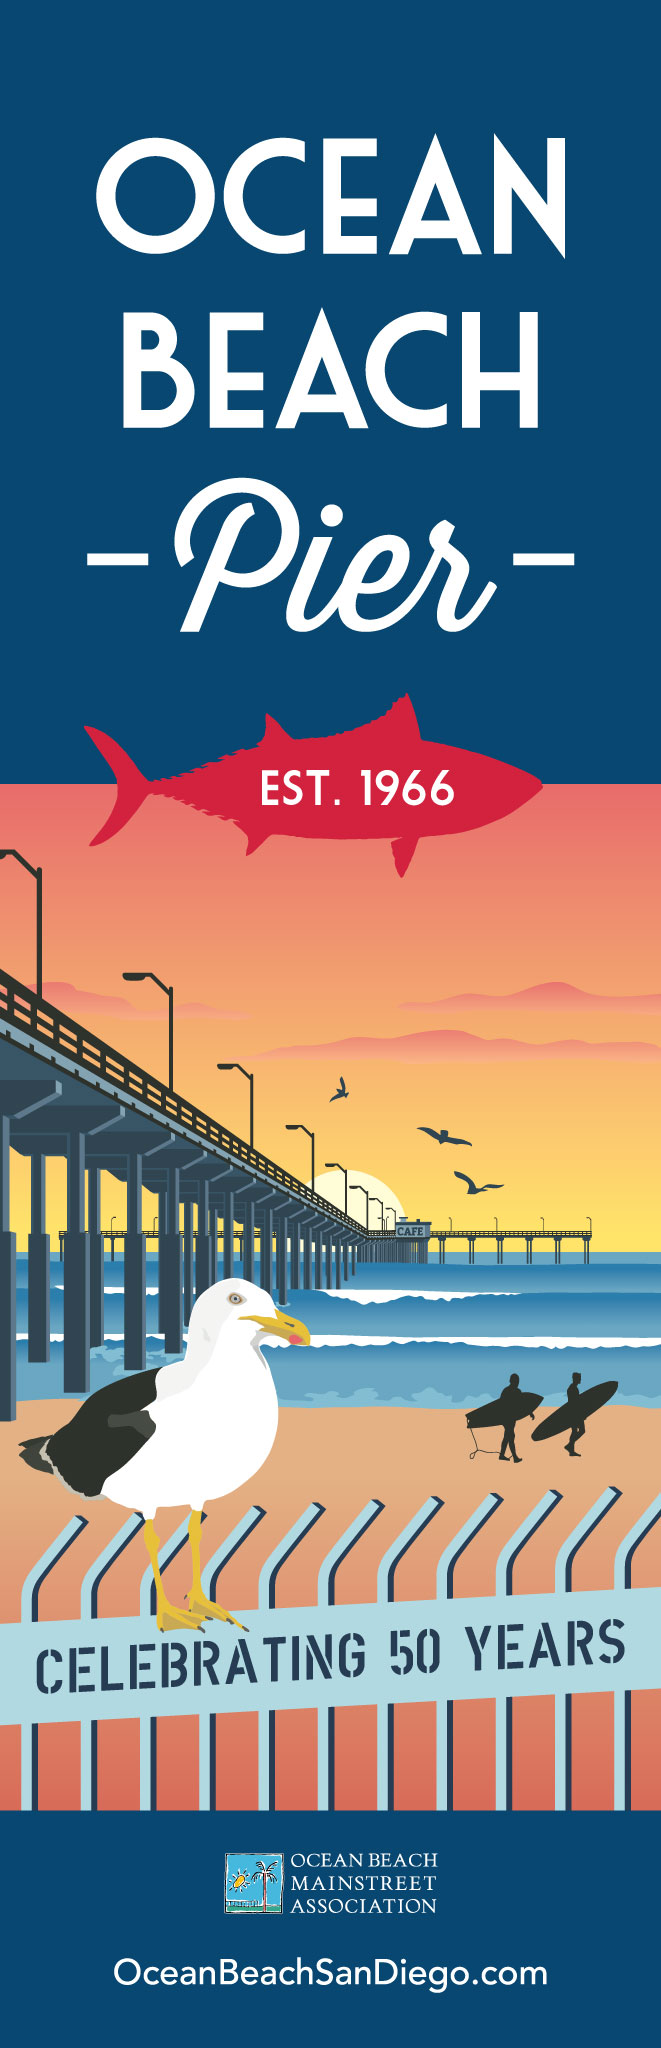 OB Pier 50th anniversary banner design by Ashley Lewis